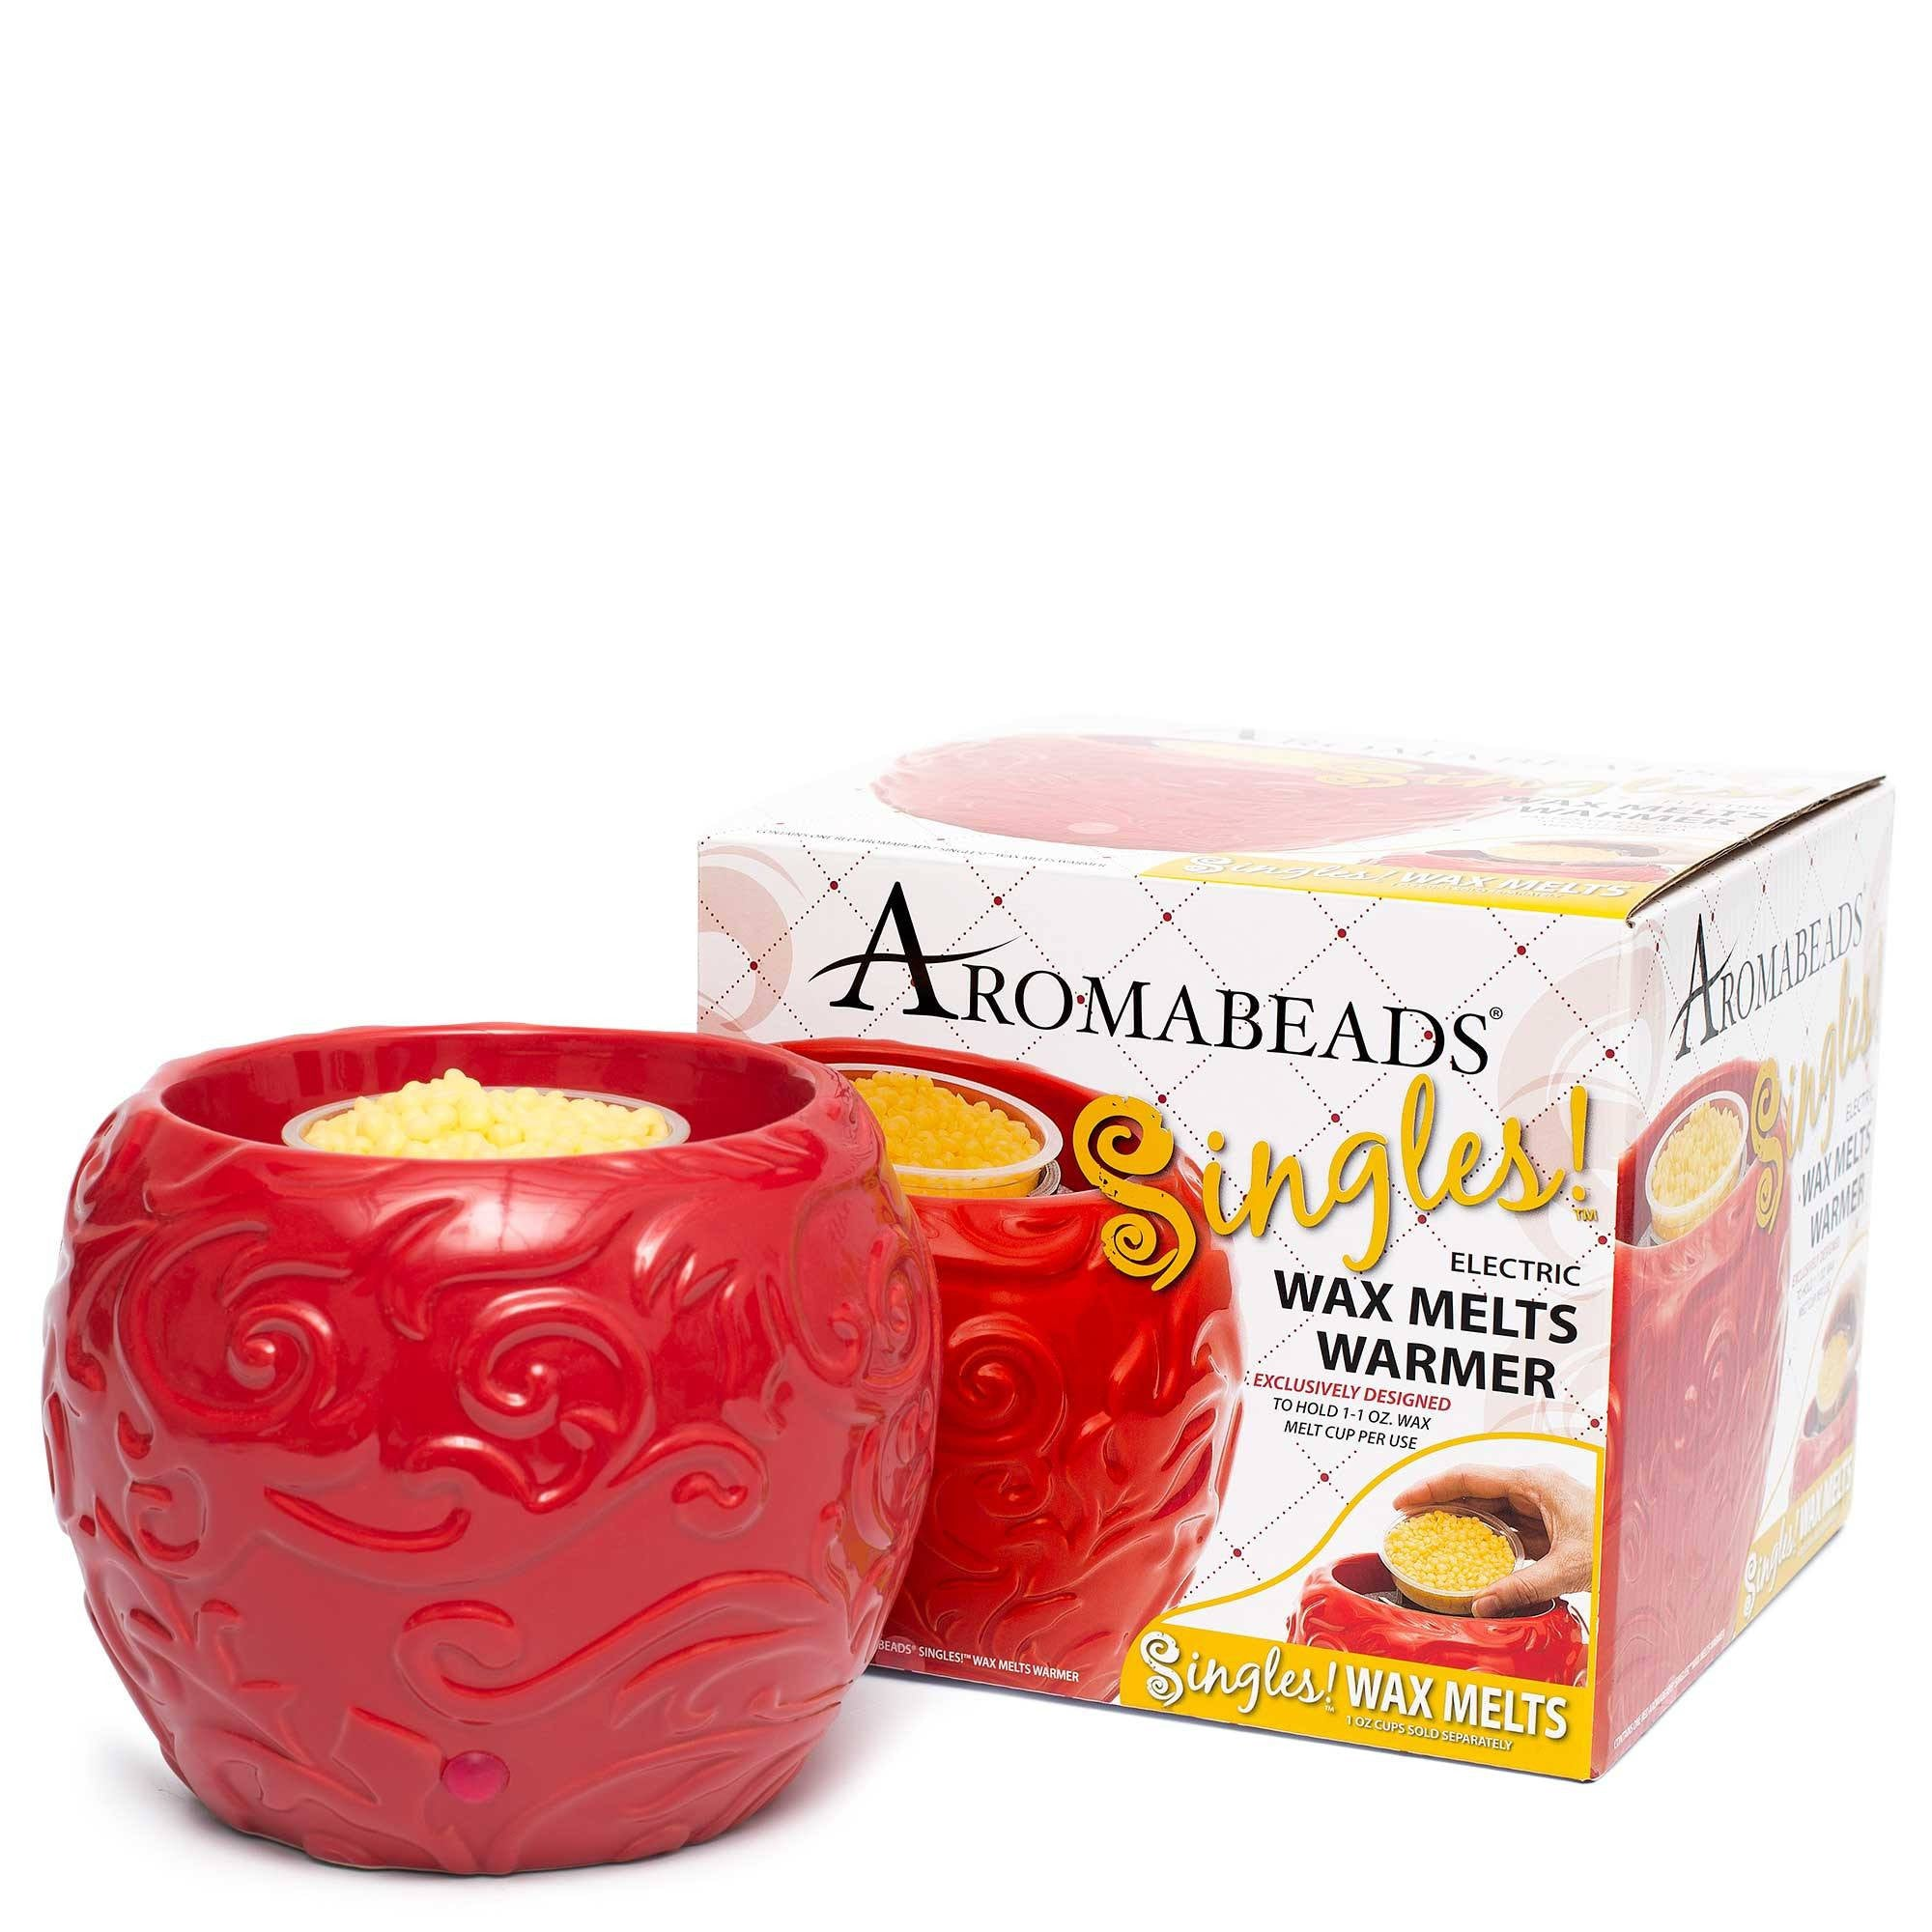 Aromabeads Singles Warm Butter Cookie Scented Wax Melts Melts Candlemart.com $ 1.49